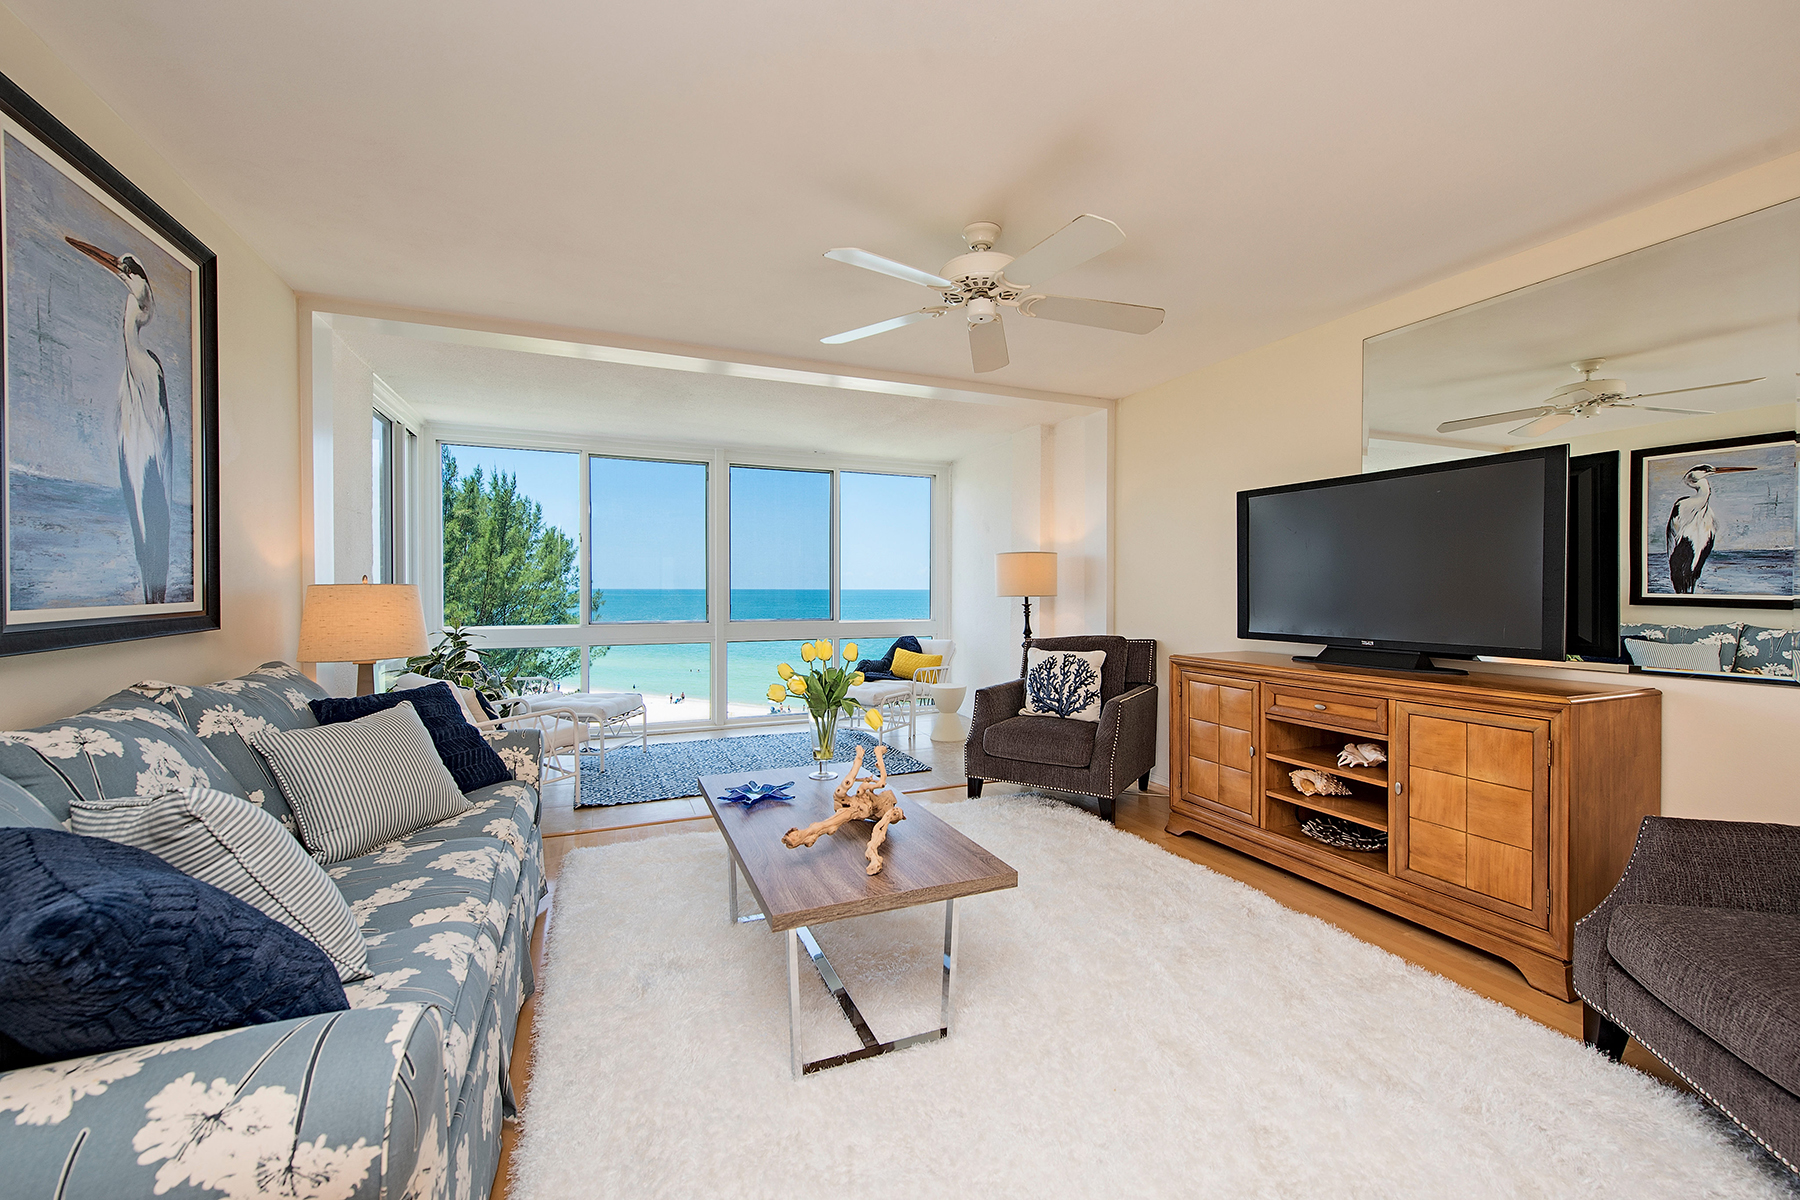 Condominium for Sale at MOORINGS - ROYAL PALM CLUB 2121 Gulf Shore Blvd N 507 Naples, Florida, 34102 United States